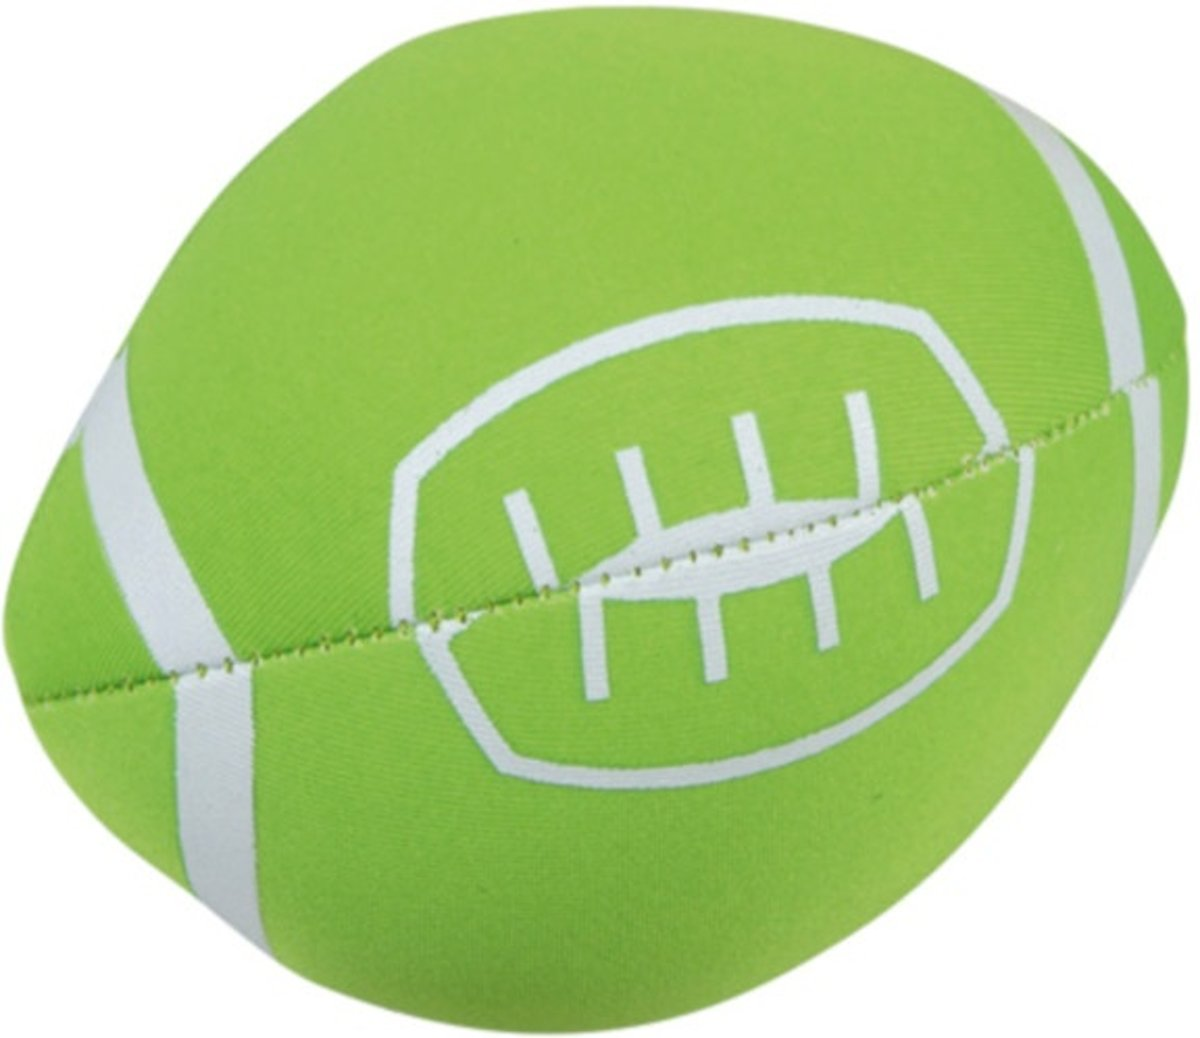 Splashbal Football 13 Cm Foam Groen